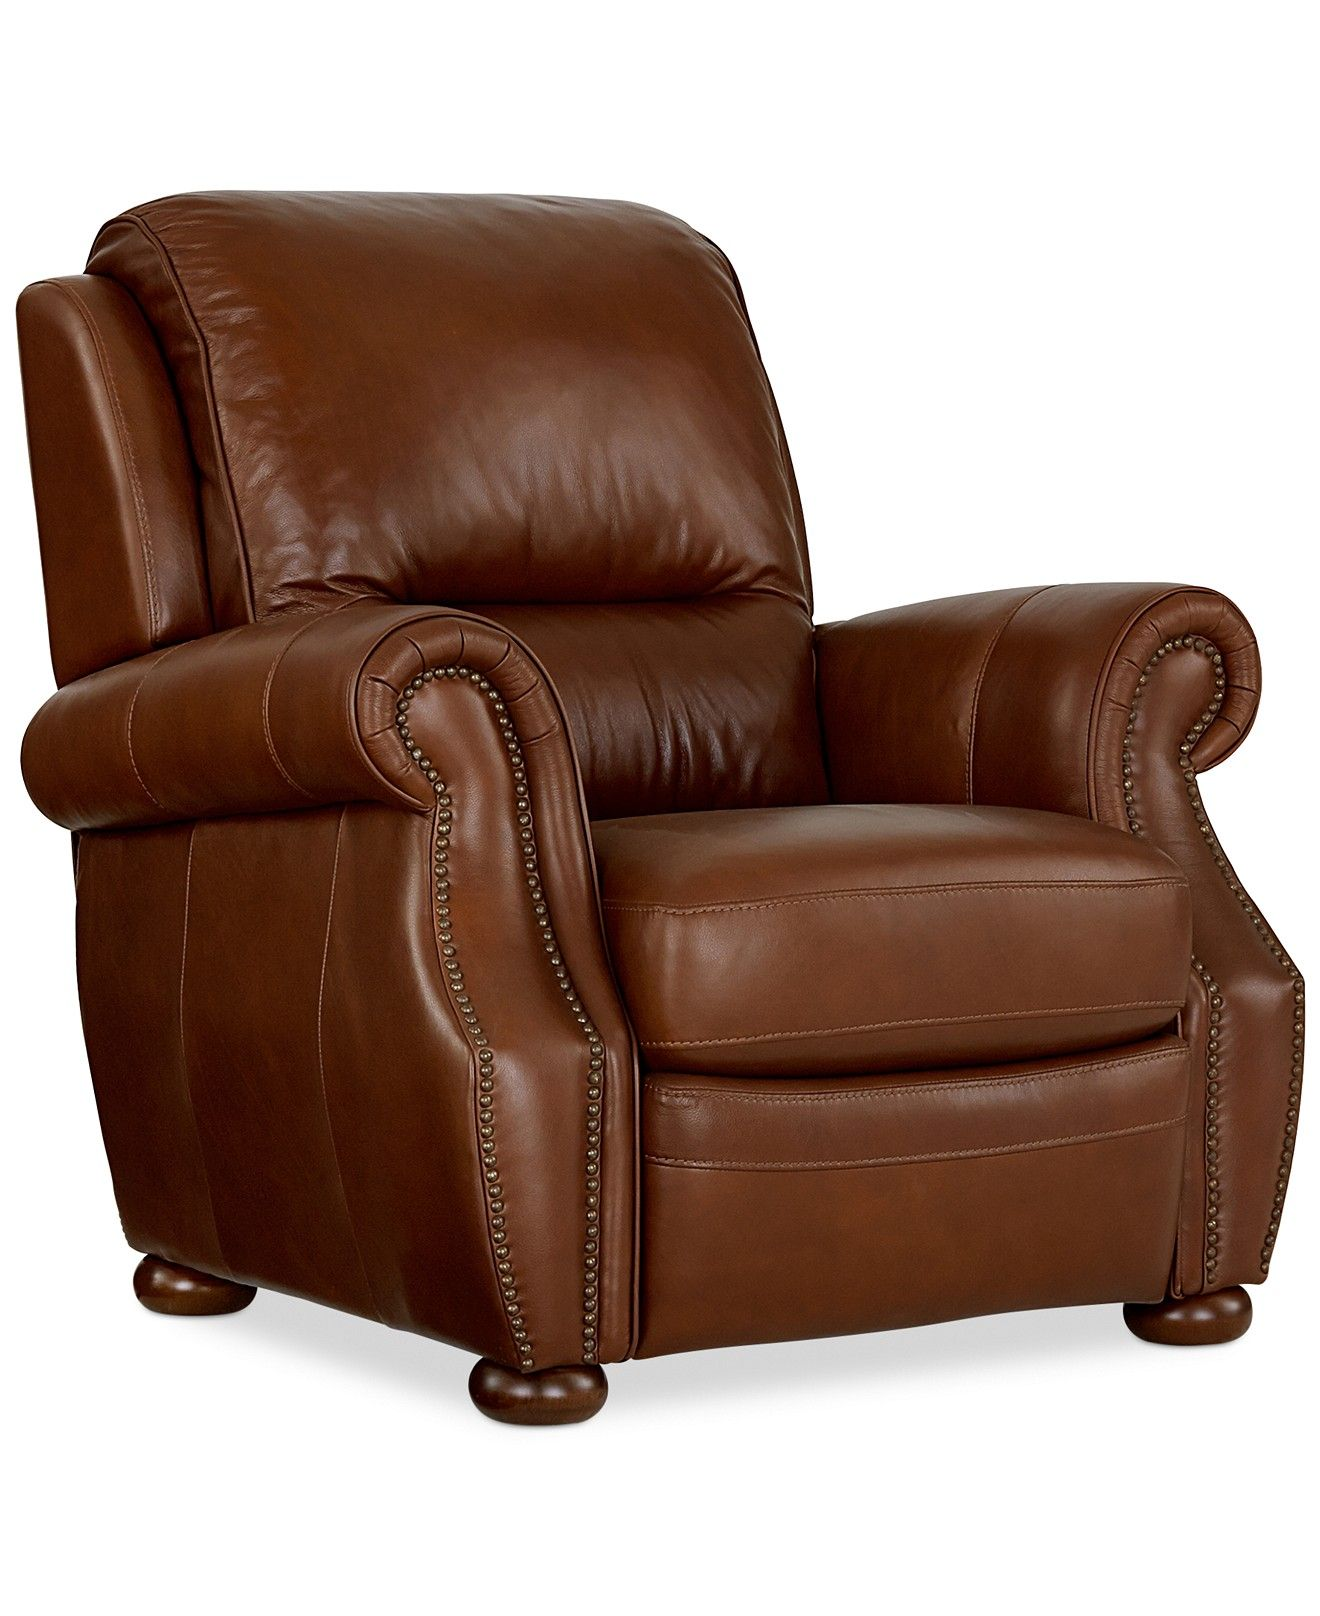 Royce leather recliner chair chairs s